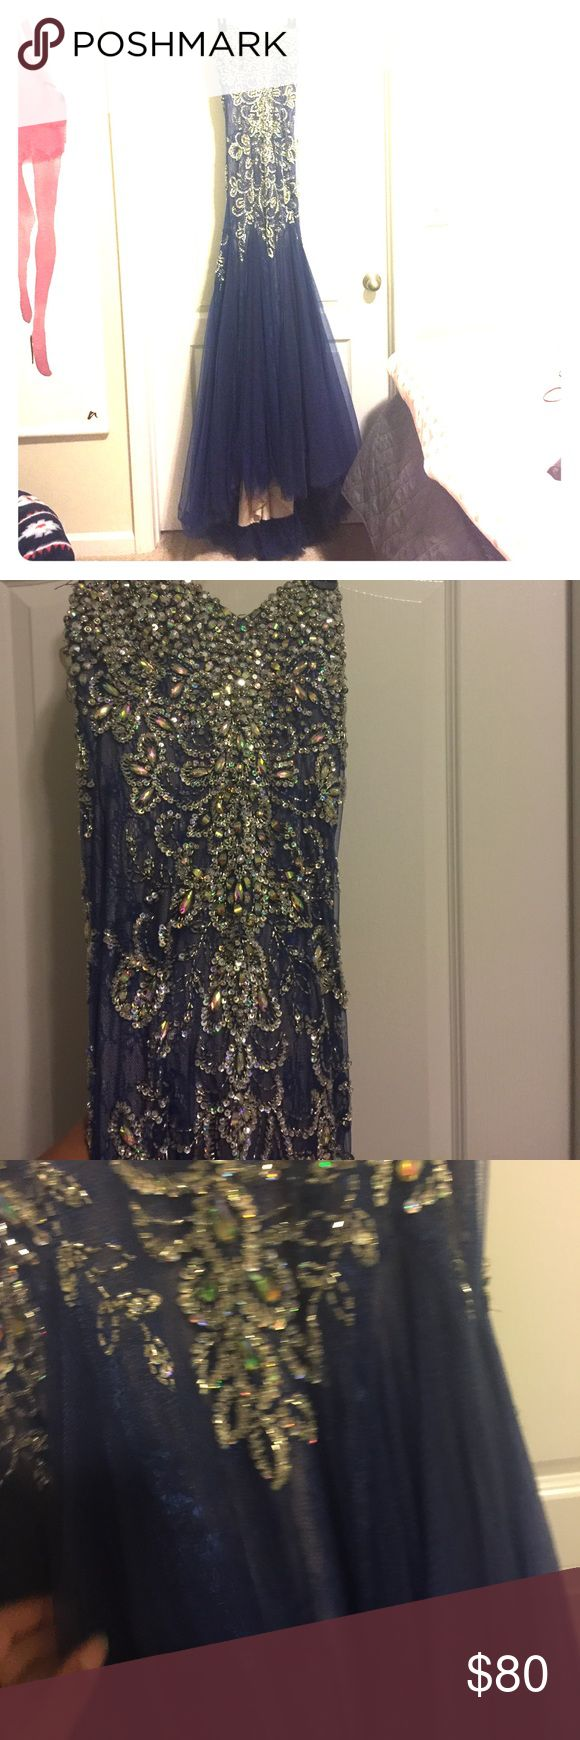 Mermaid Prom Dress w/ Beautiful Train! Long train in the back, nude slip beneath, lots of stretch for a gloved fit, minimal lost jewels on bodice but comes with extras in a bag. WILL ACCEPT OFFERS. macduggal Dresses Prom